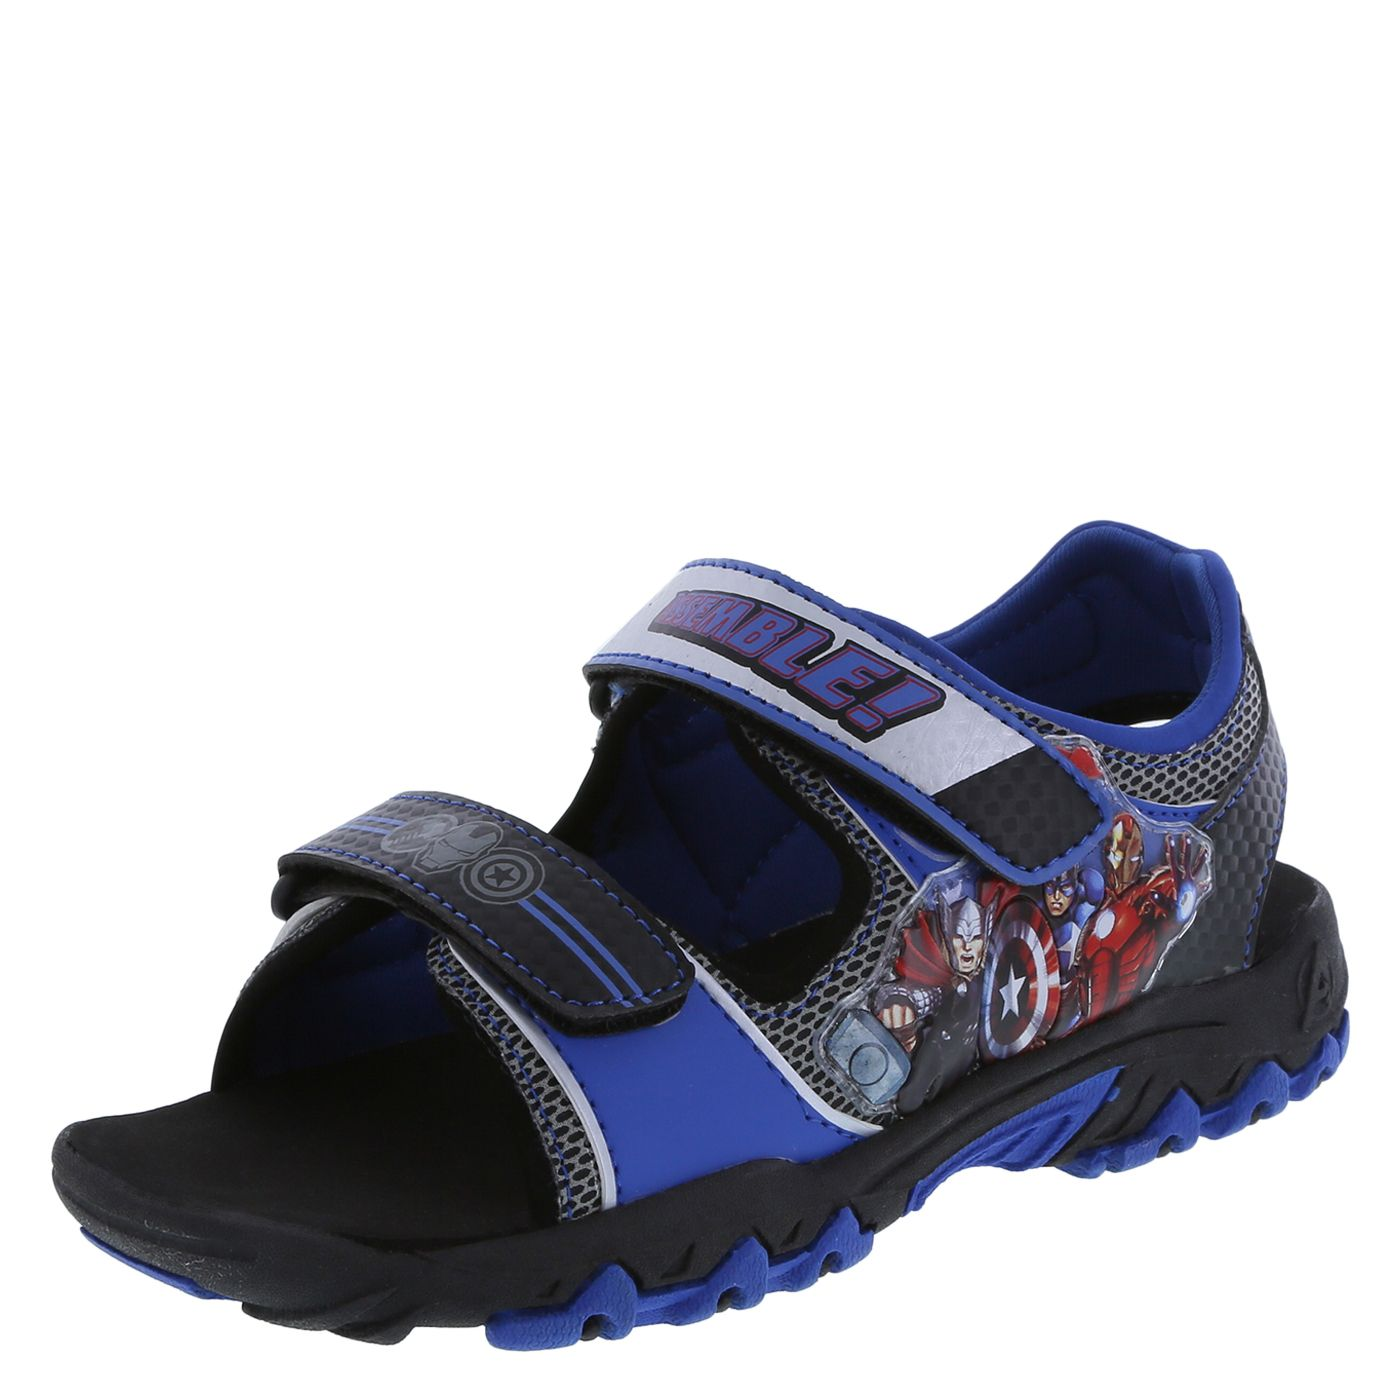 0aba07135dad Light up his world with The Avengers sports sandal!